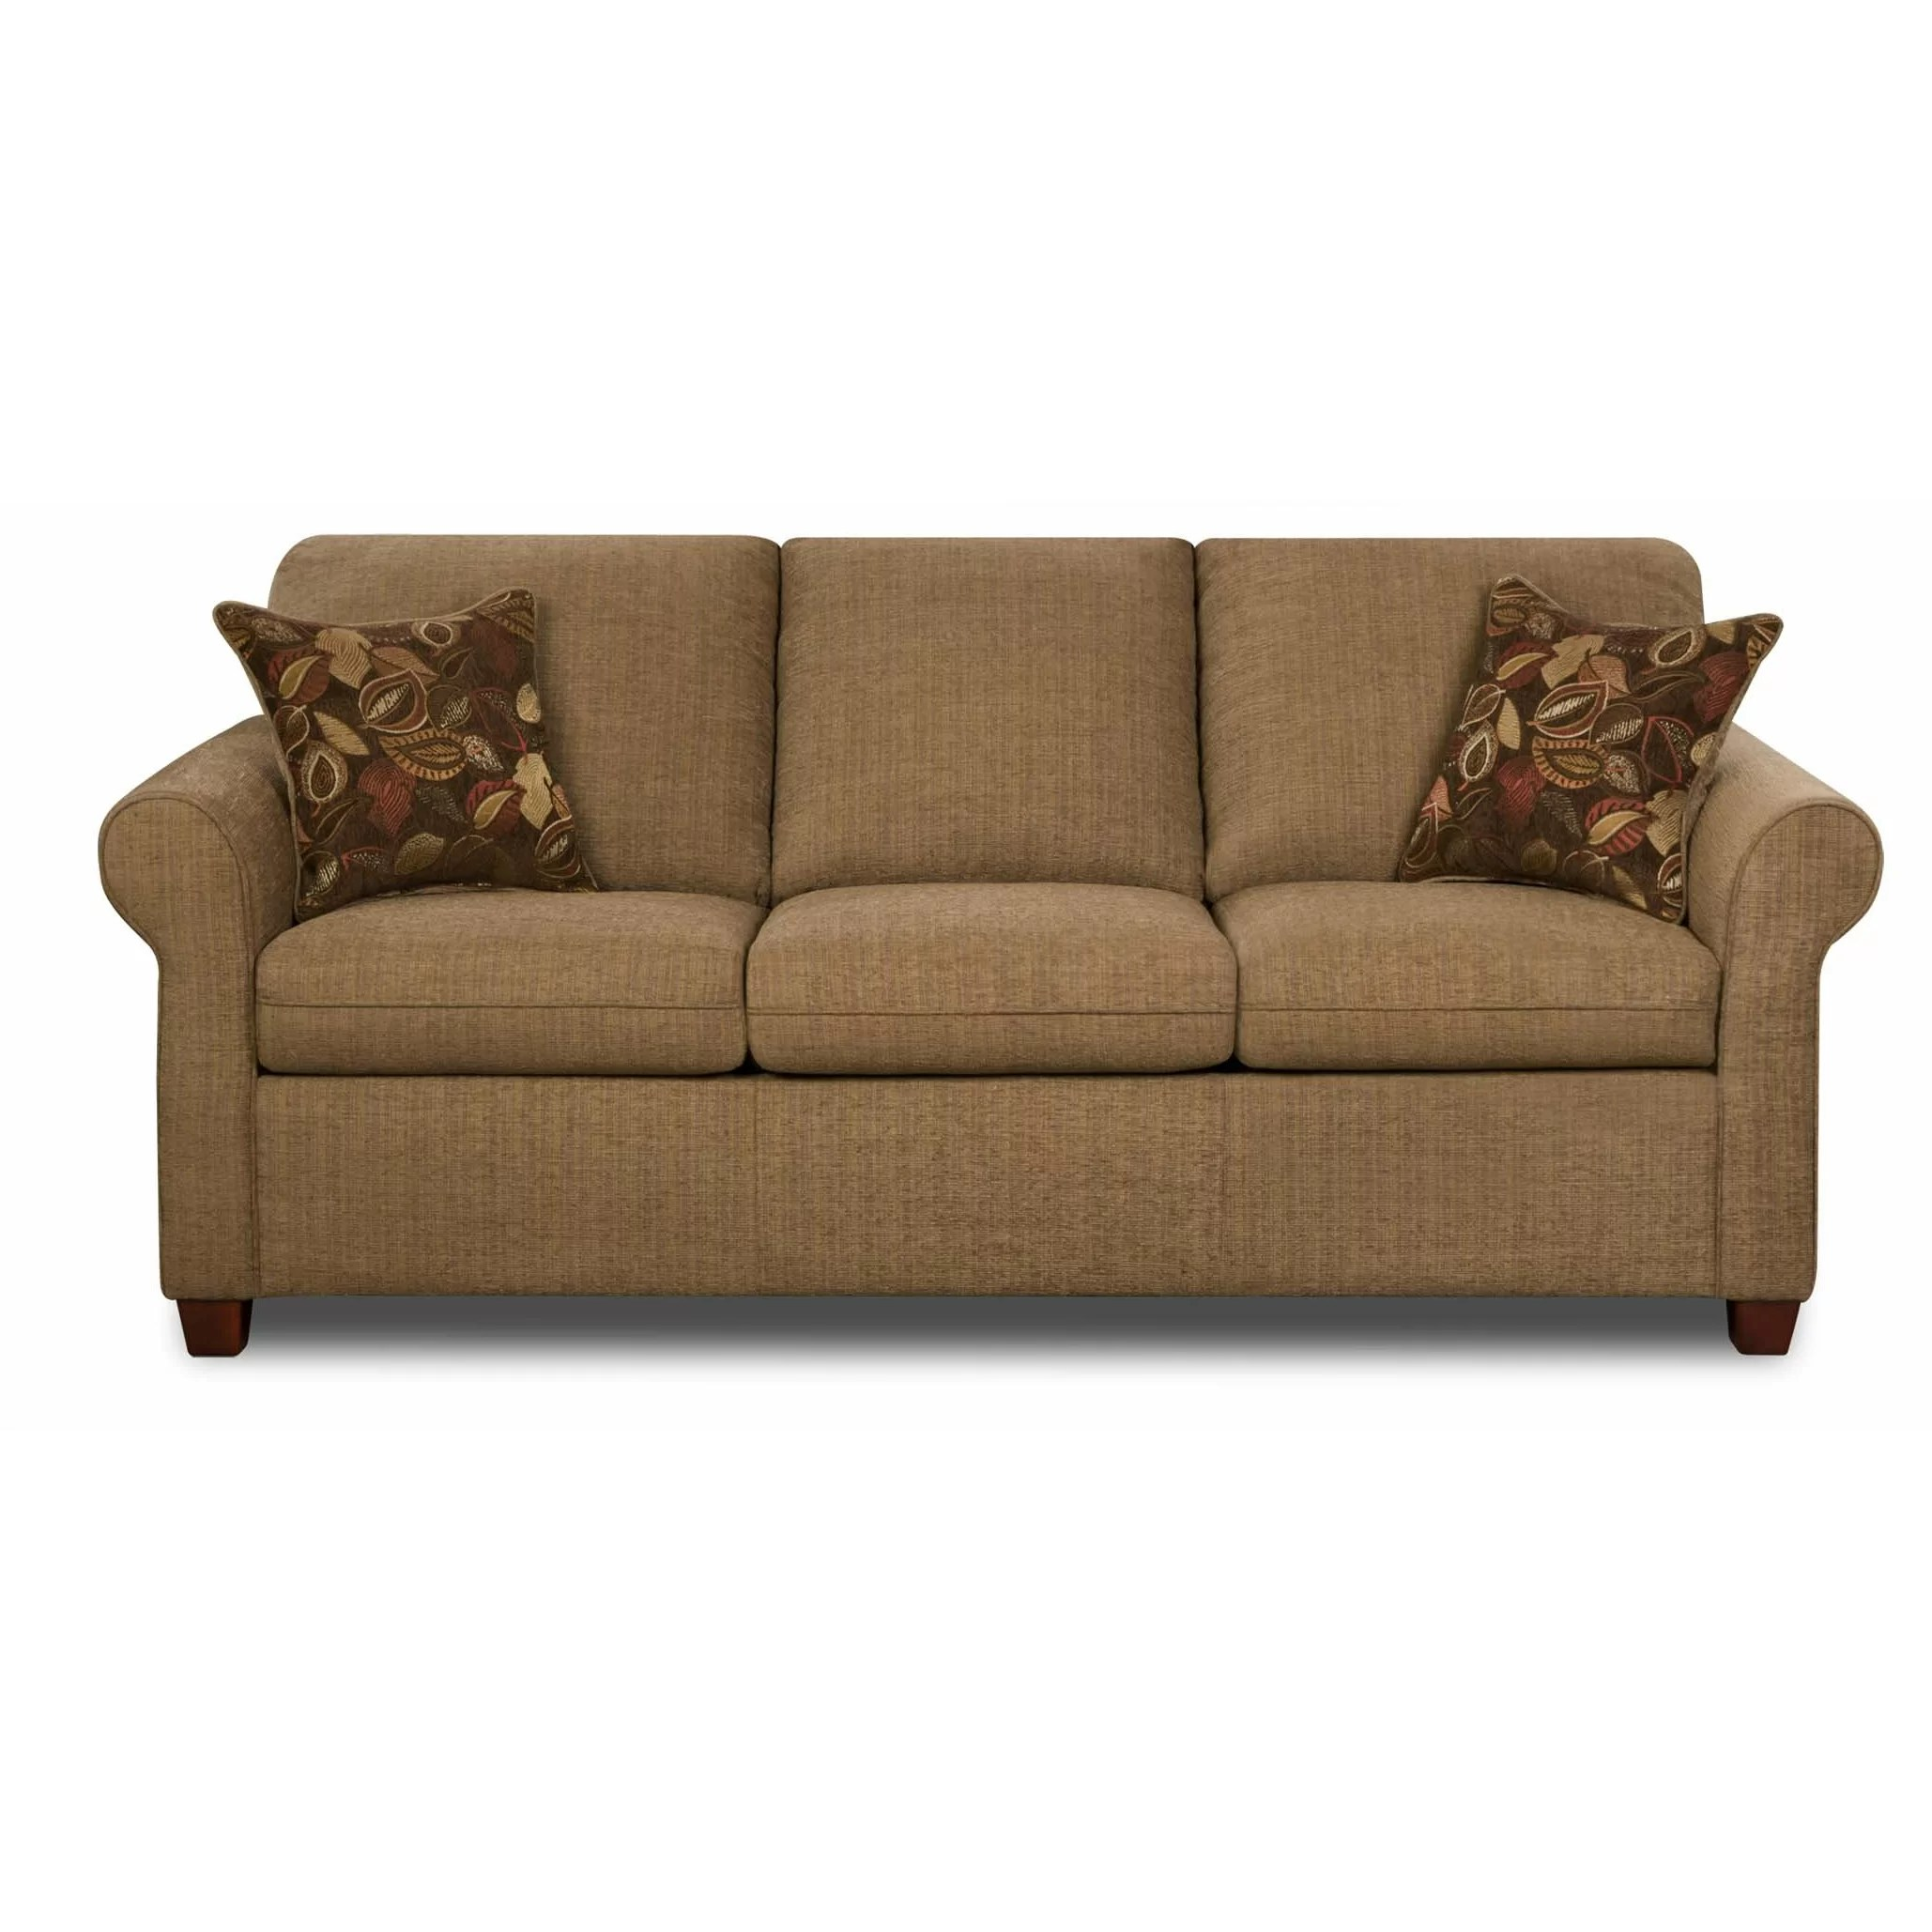 Hide A Bed Sectional Rustic Style Sleeper Sofa Baci Living Room